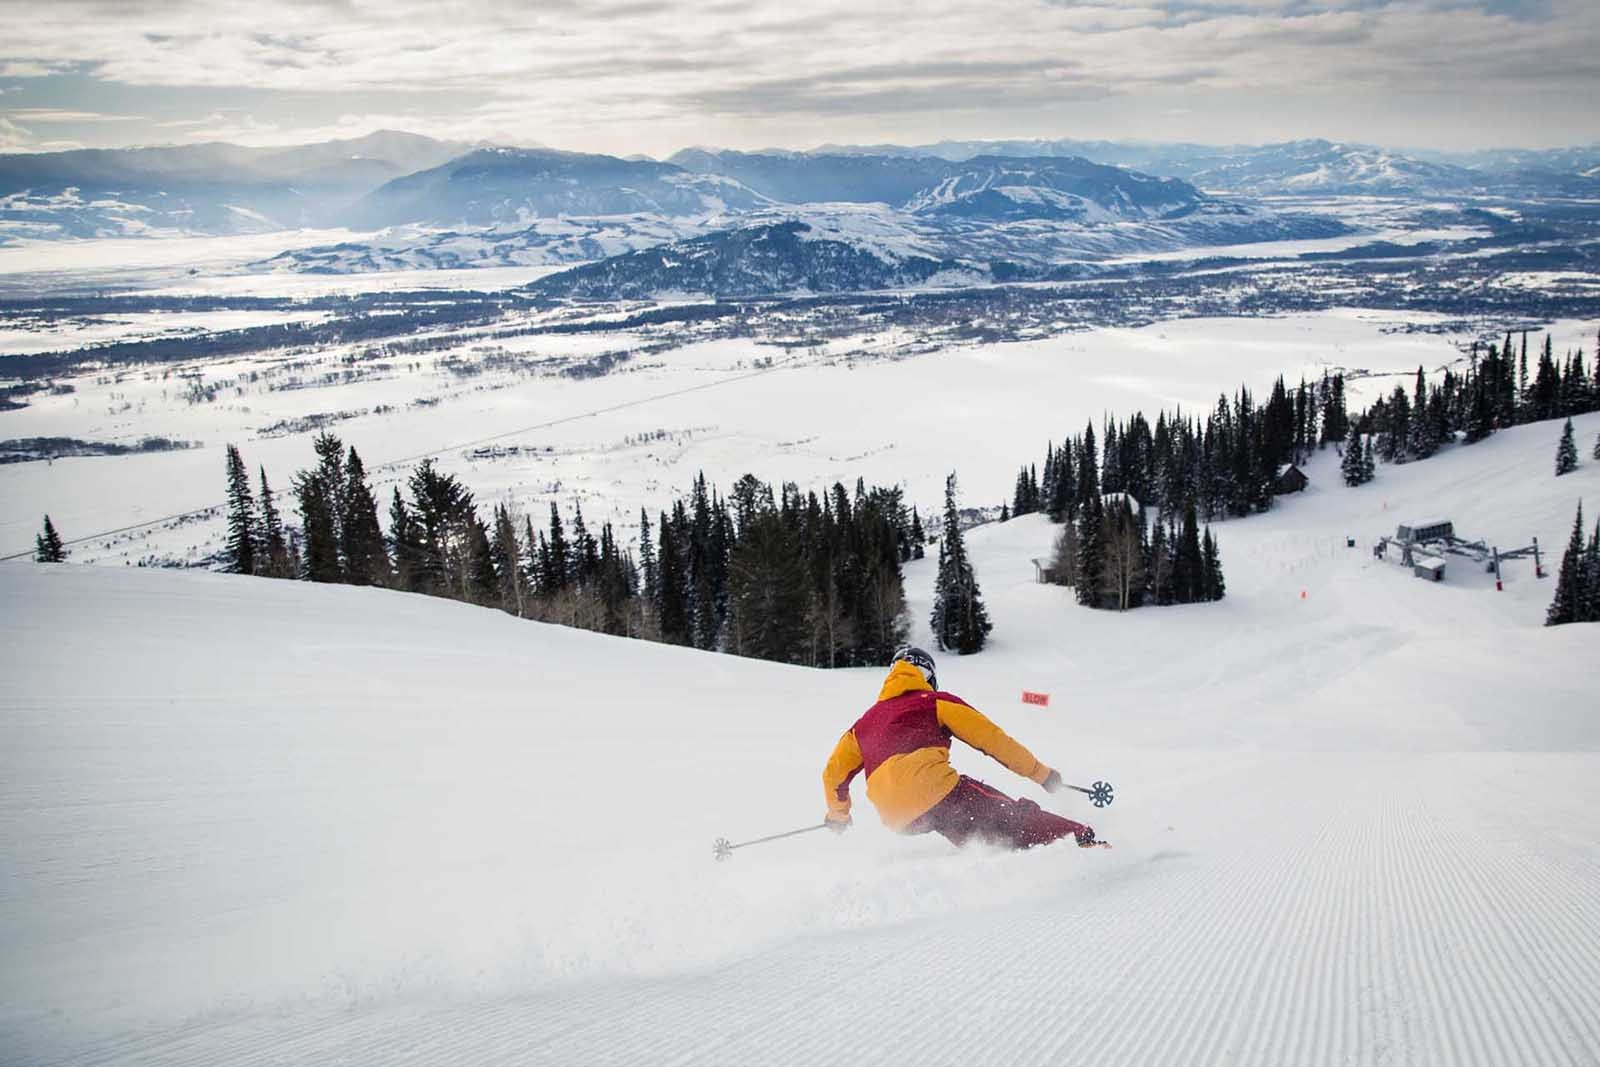 With winter slopes and summer hiking trails, Jackson Hole is a true four-seasons destination.